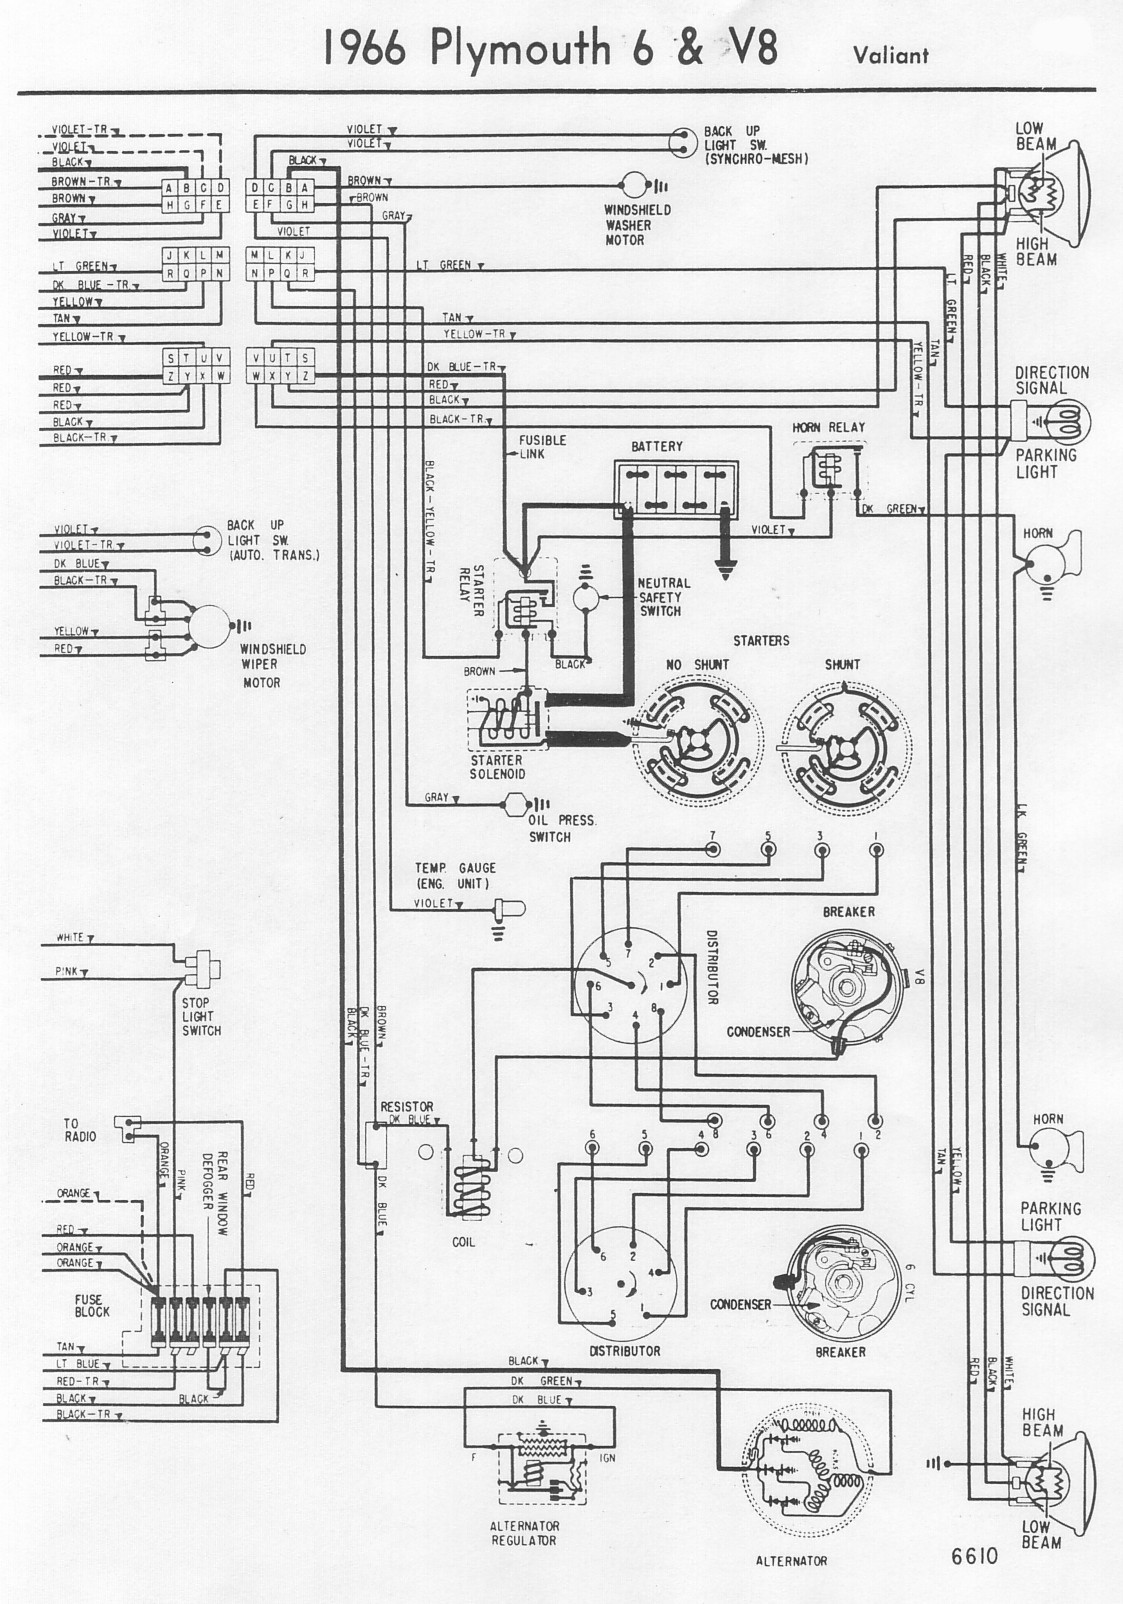 66ValiantB?quality\\=80\\&strip\\=all 1976 suzuki dr 250 wiring diagram suzuki gsx 750 wiring diagram suzuki ozark 250 wiring diagram at bayanpartner.co